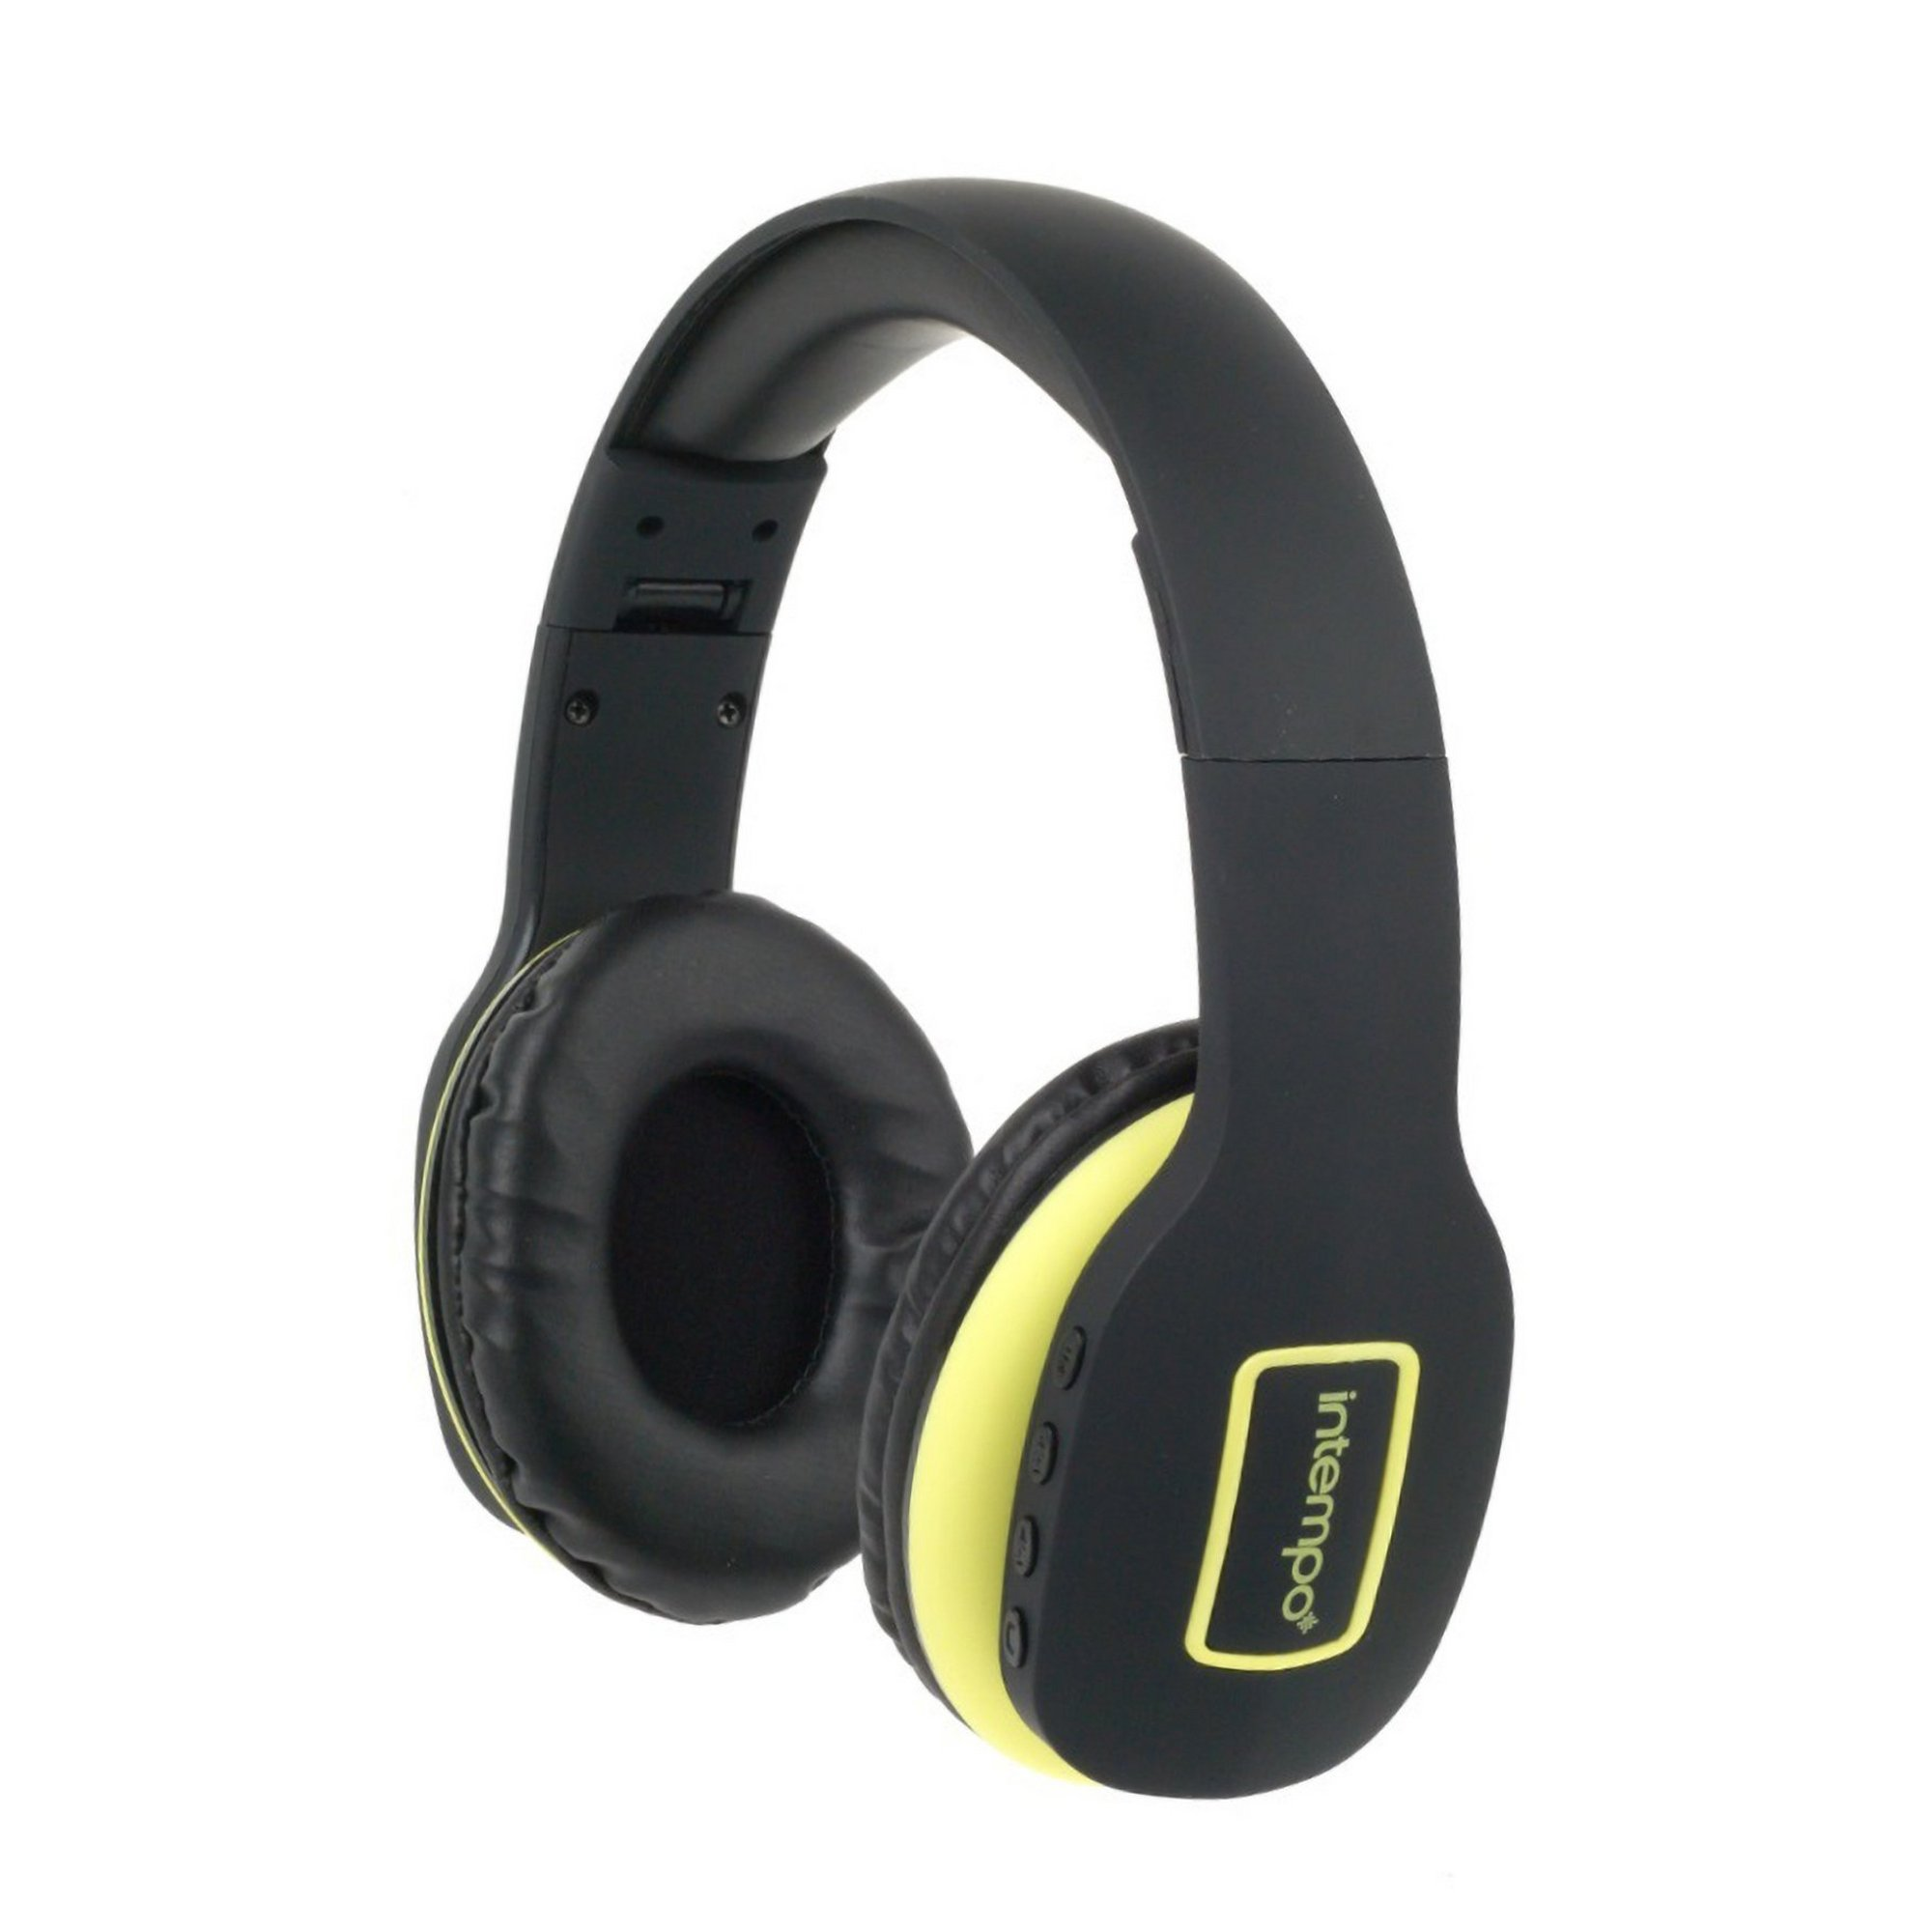 Image of Intempo Active Wireless Bluetooth Foldable Headphones